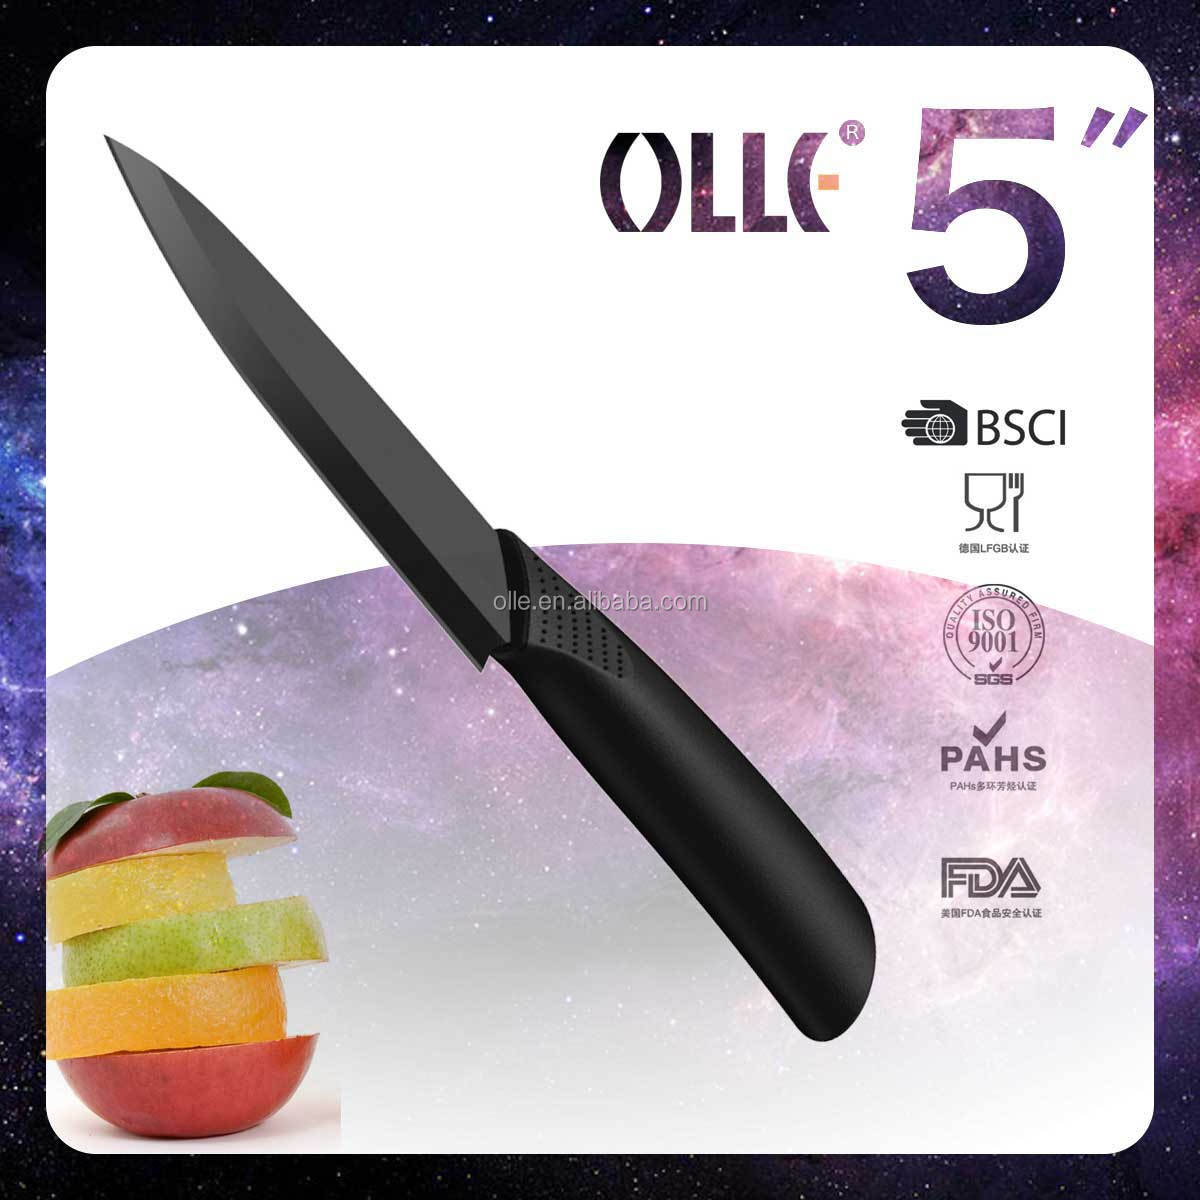 5 Inch Olle Classical Straight Handle Kitchen Matt Black Ceramic Knife